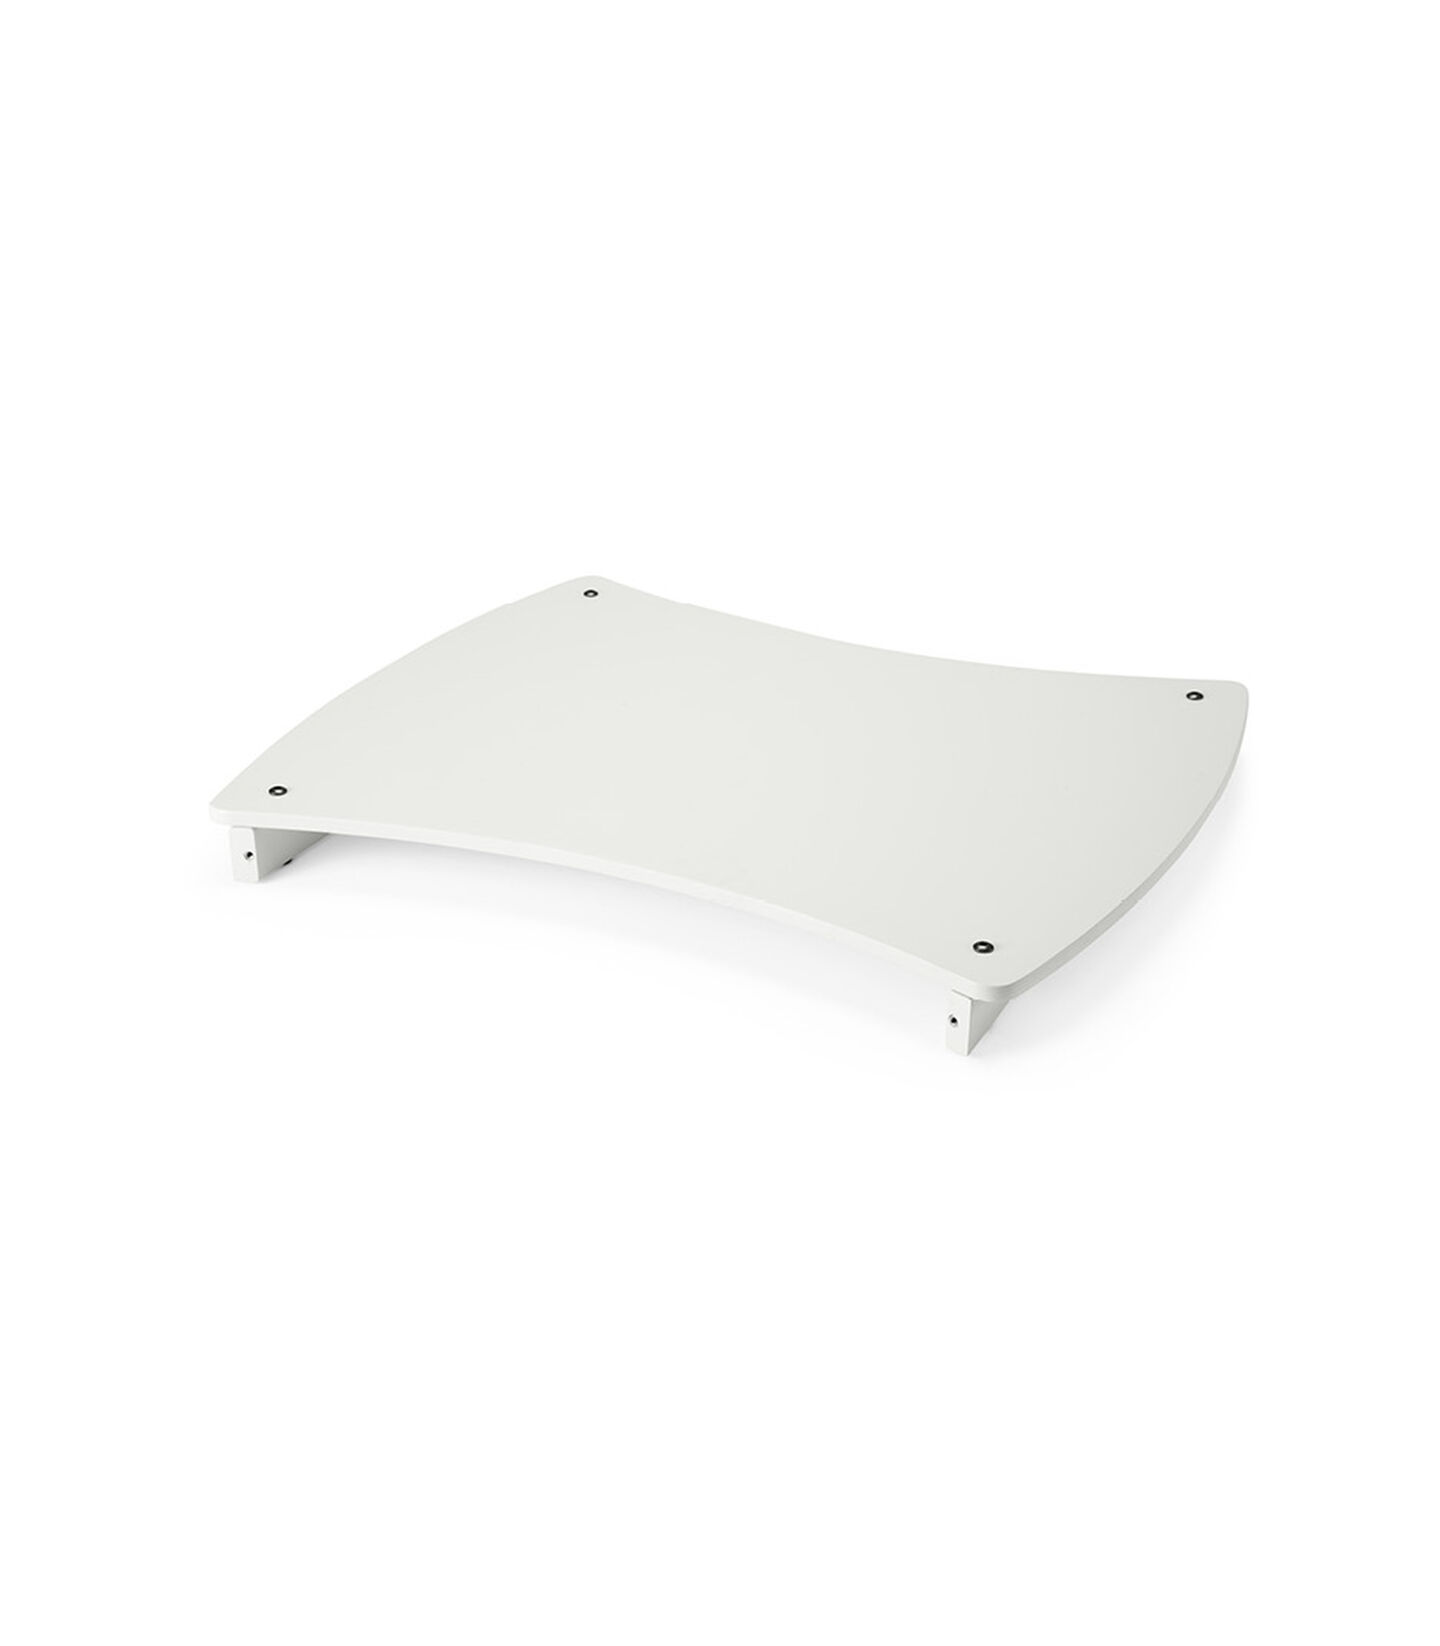 Stokke® Care™ Bovenplank Compleet White, White, mainview view 2